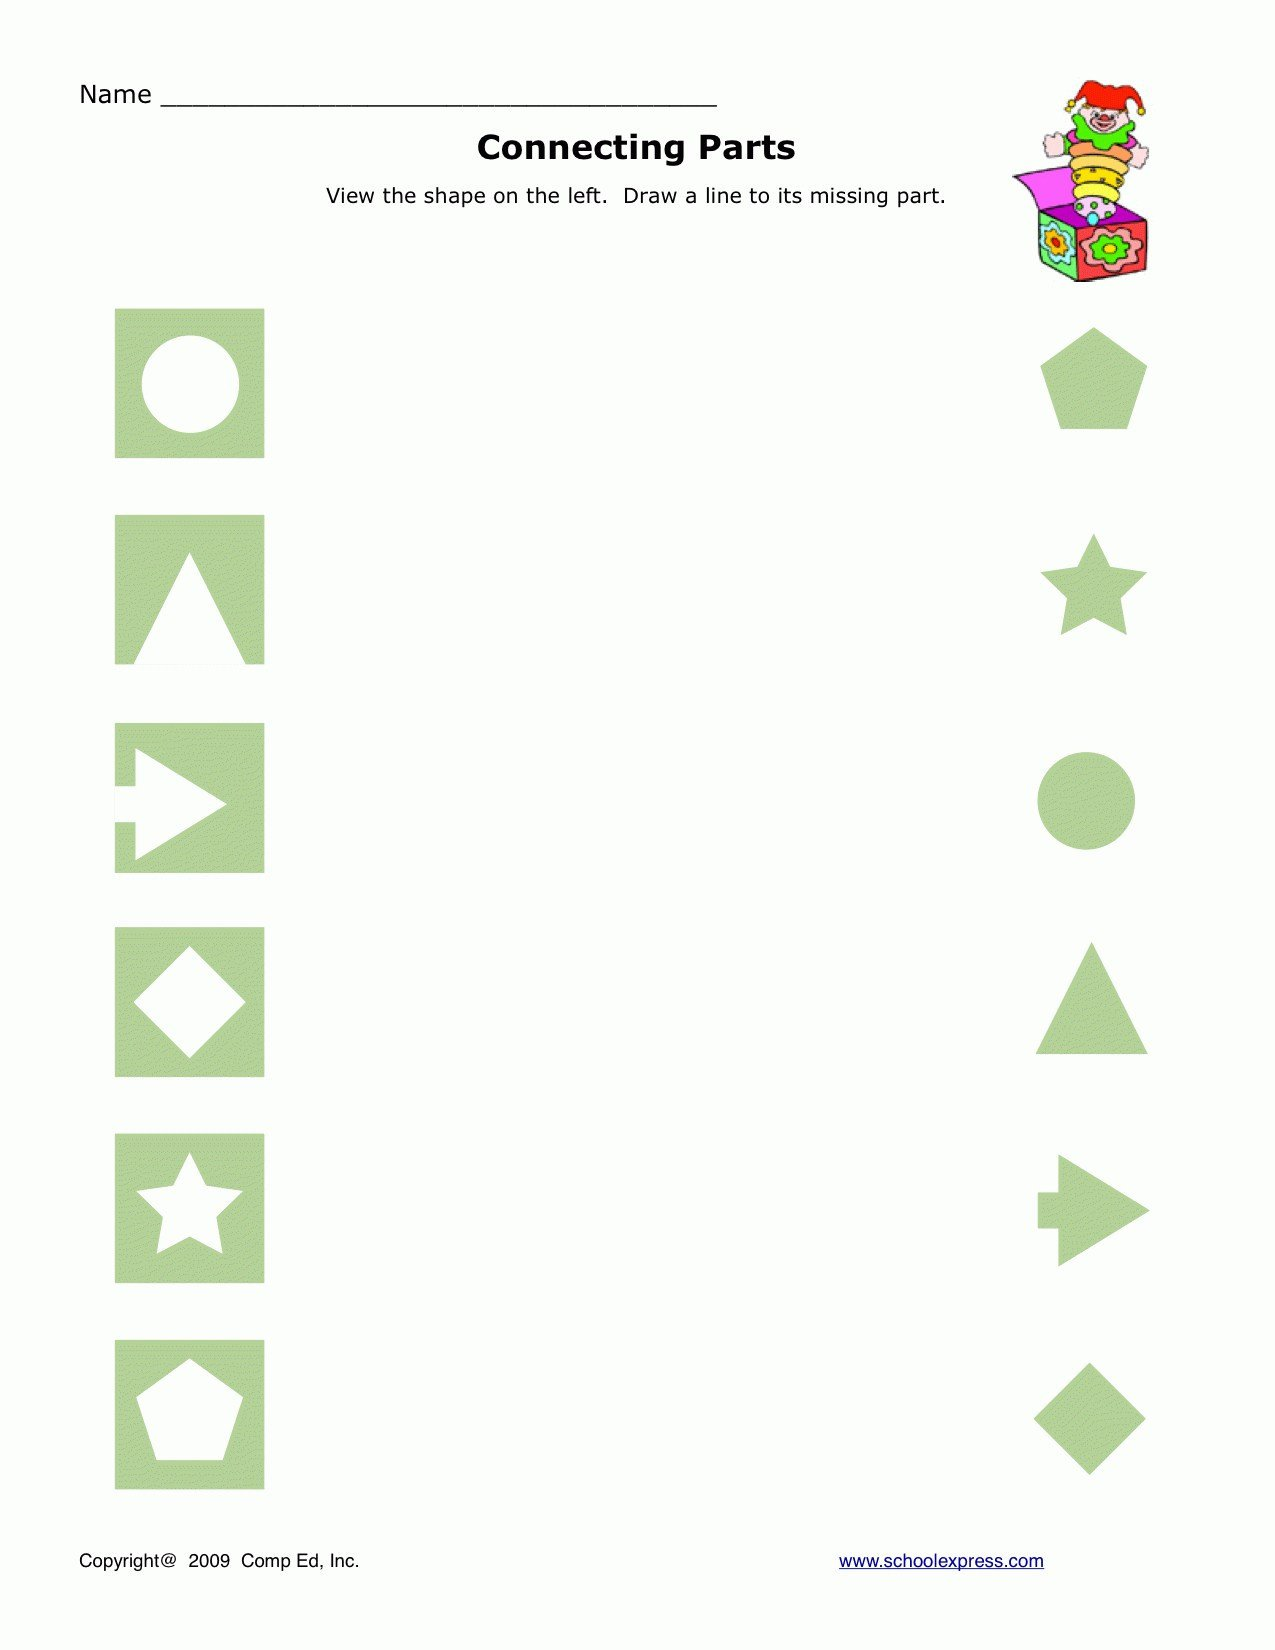 Visual Memory Worksheets Visual Scanning Worksheets Printable